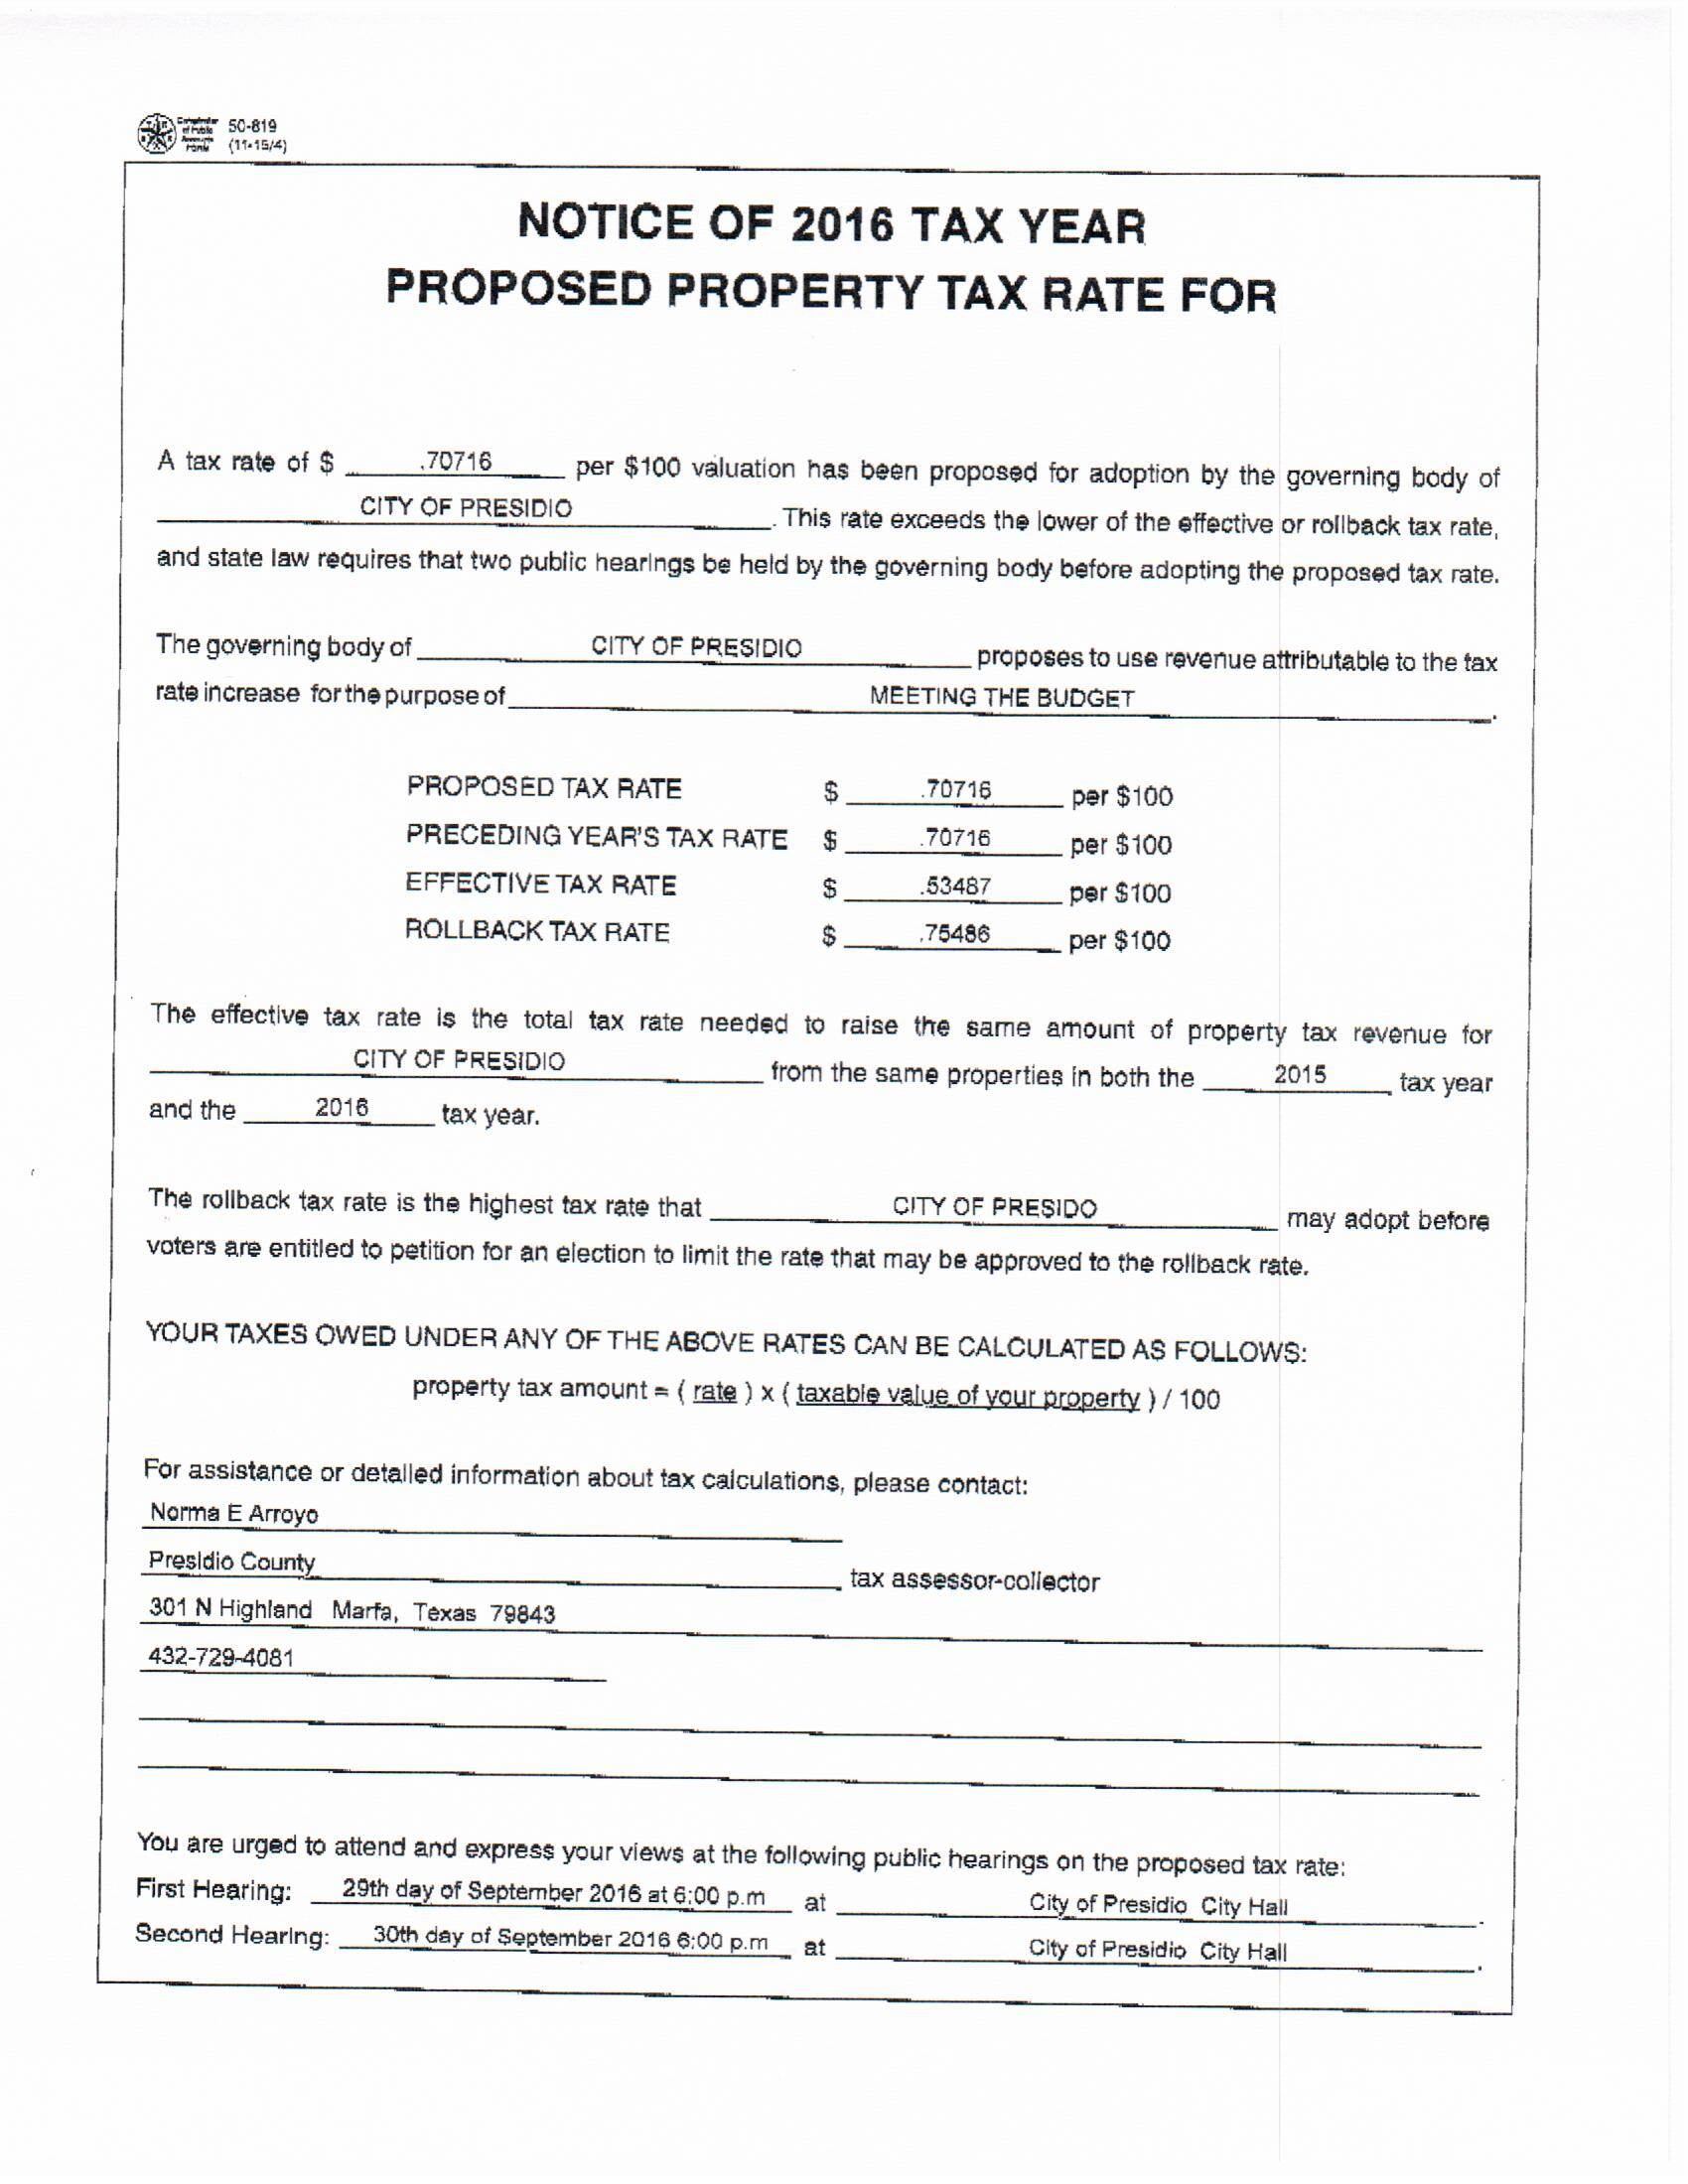 2016-proposed-city-tax-rate0001